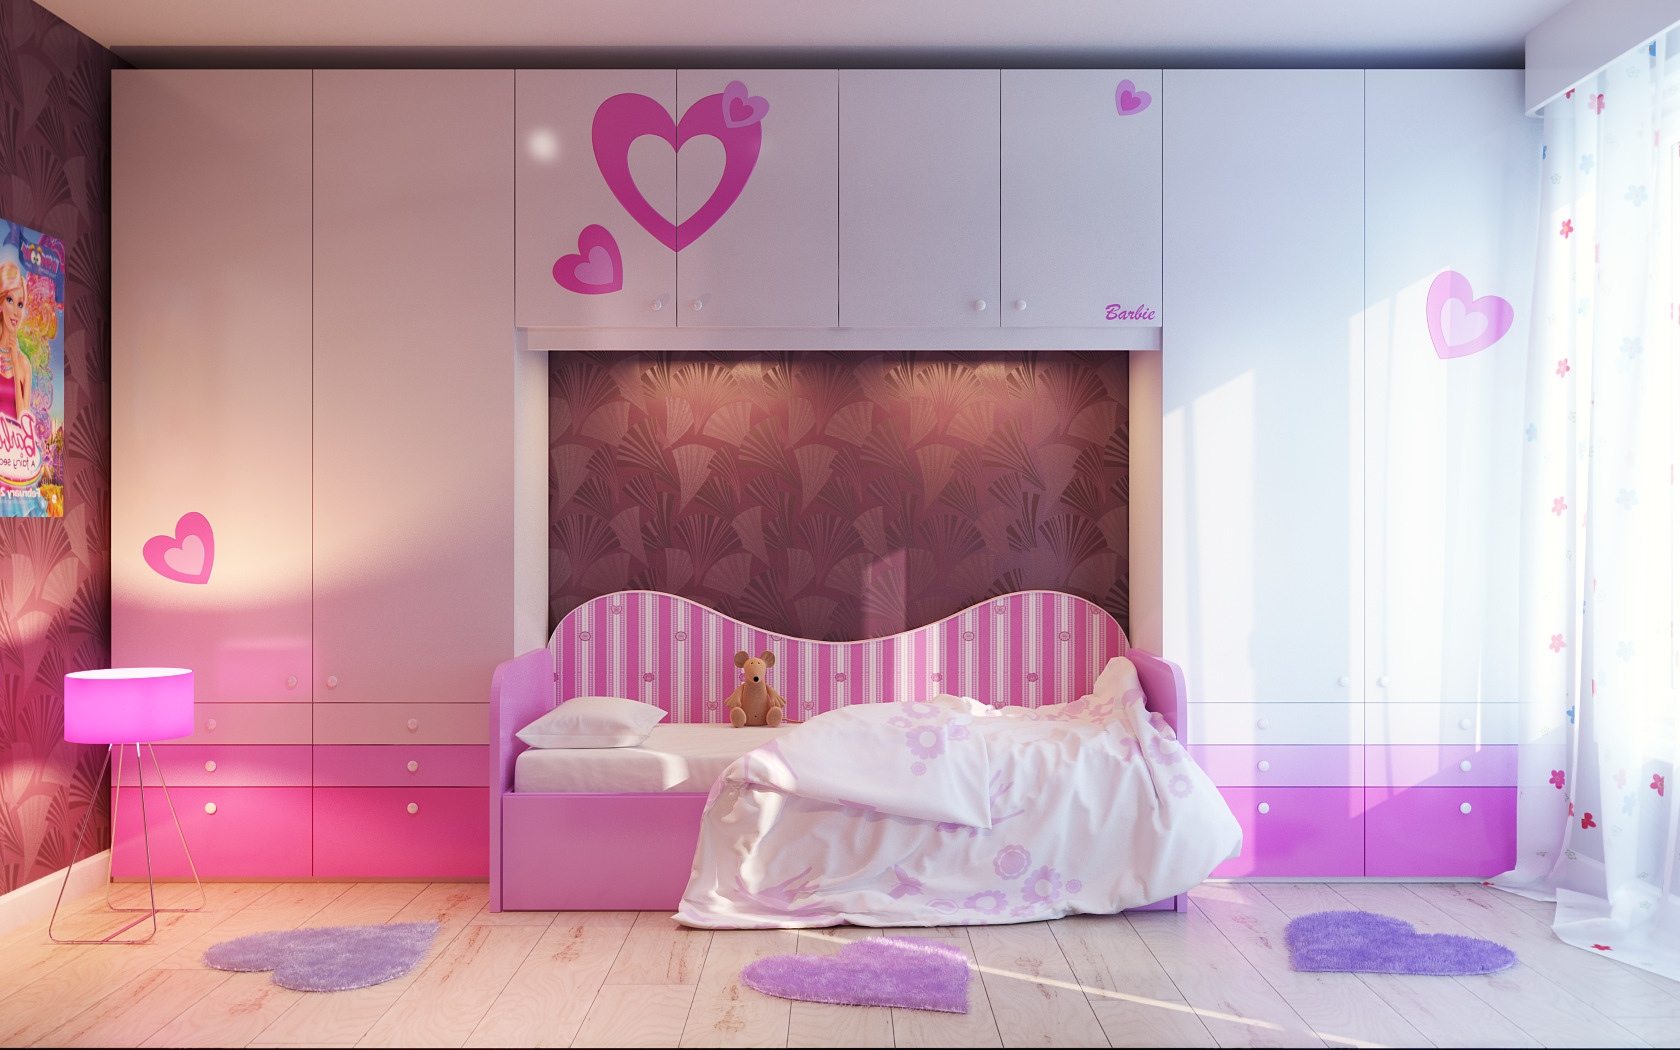 Via VladoMNA Barbie and heart themed room is at the pinnacle of girlie 1680x1050